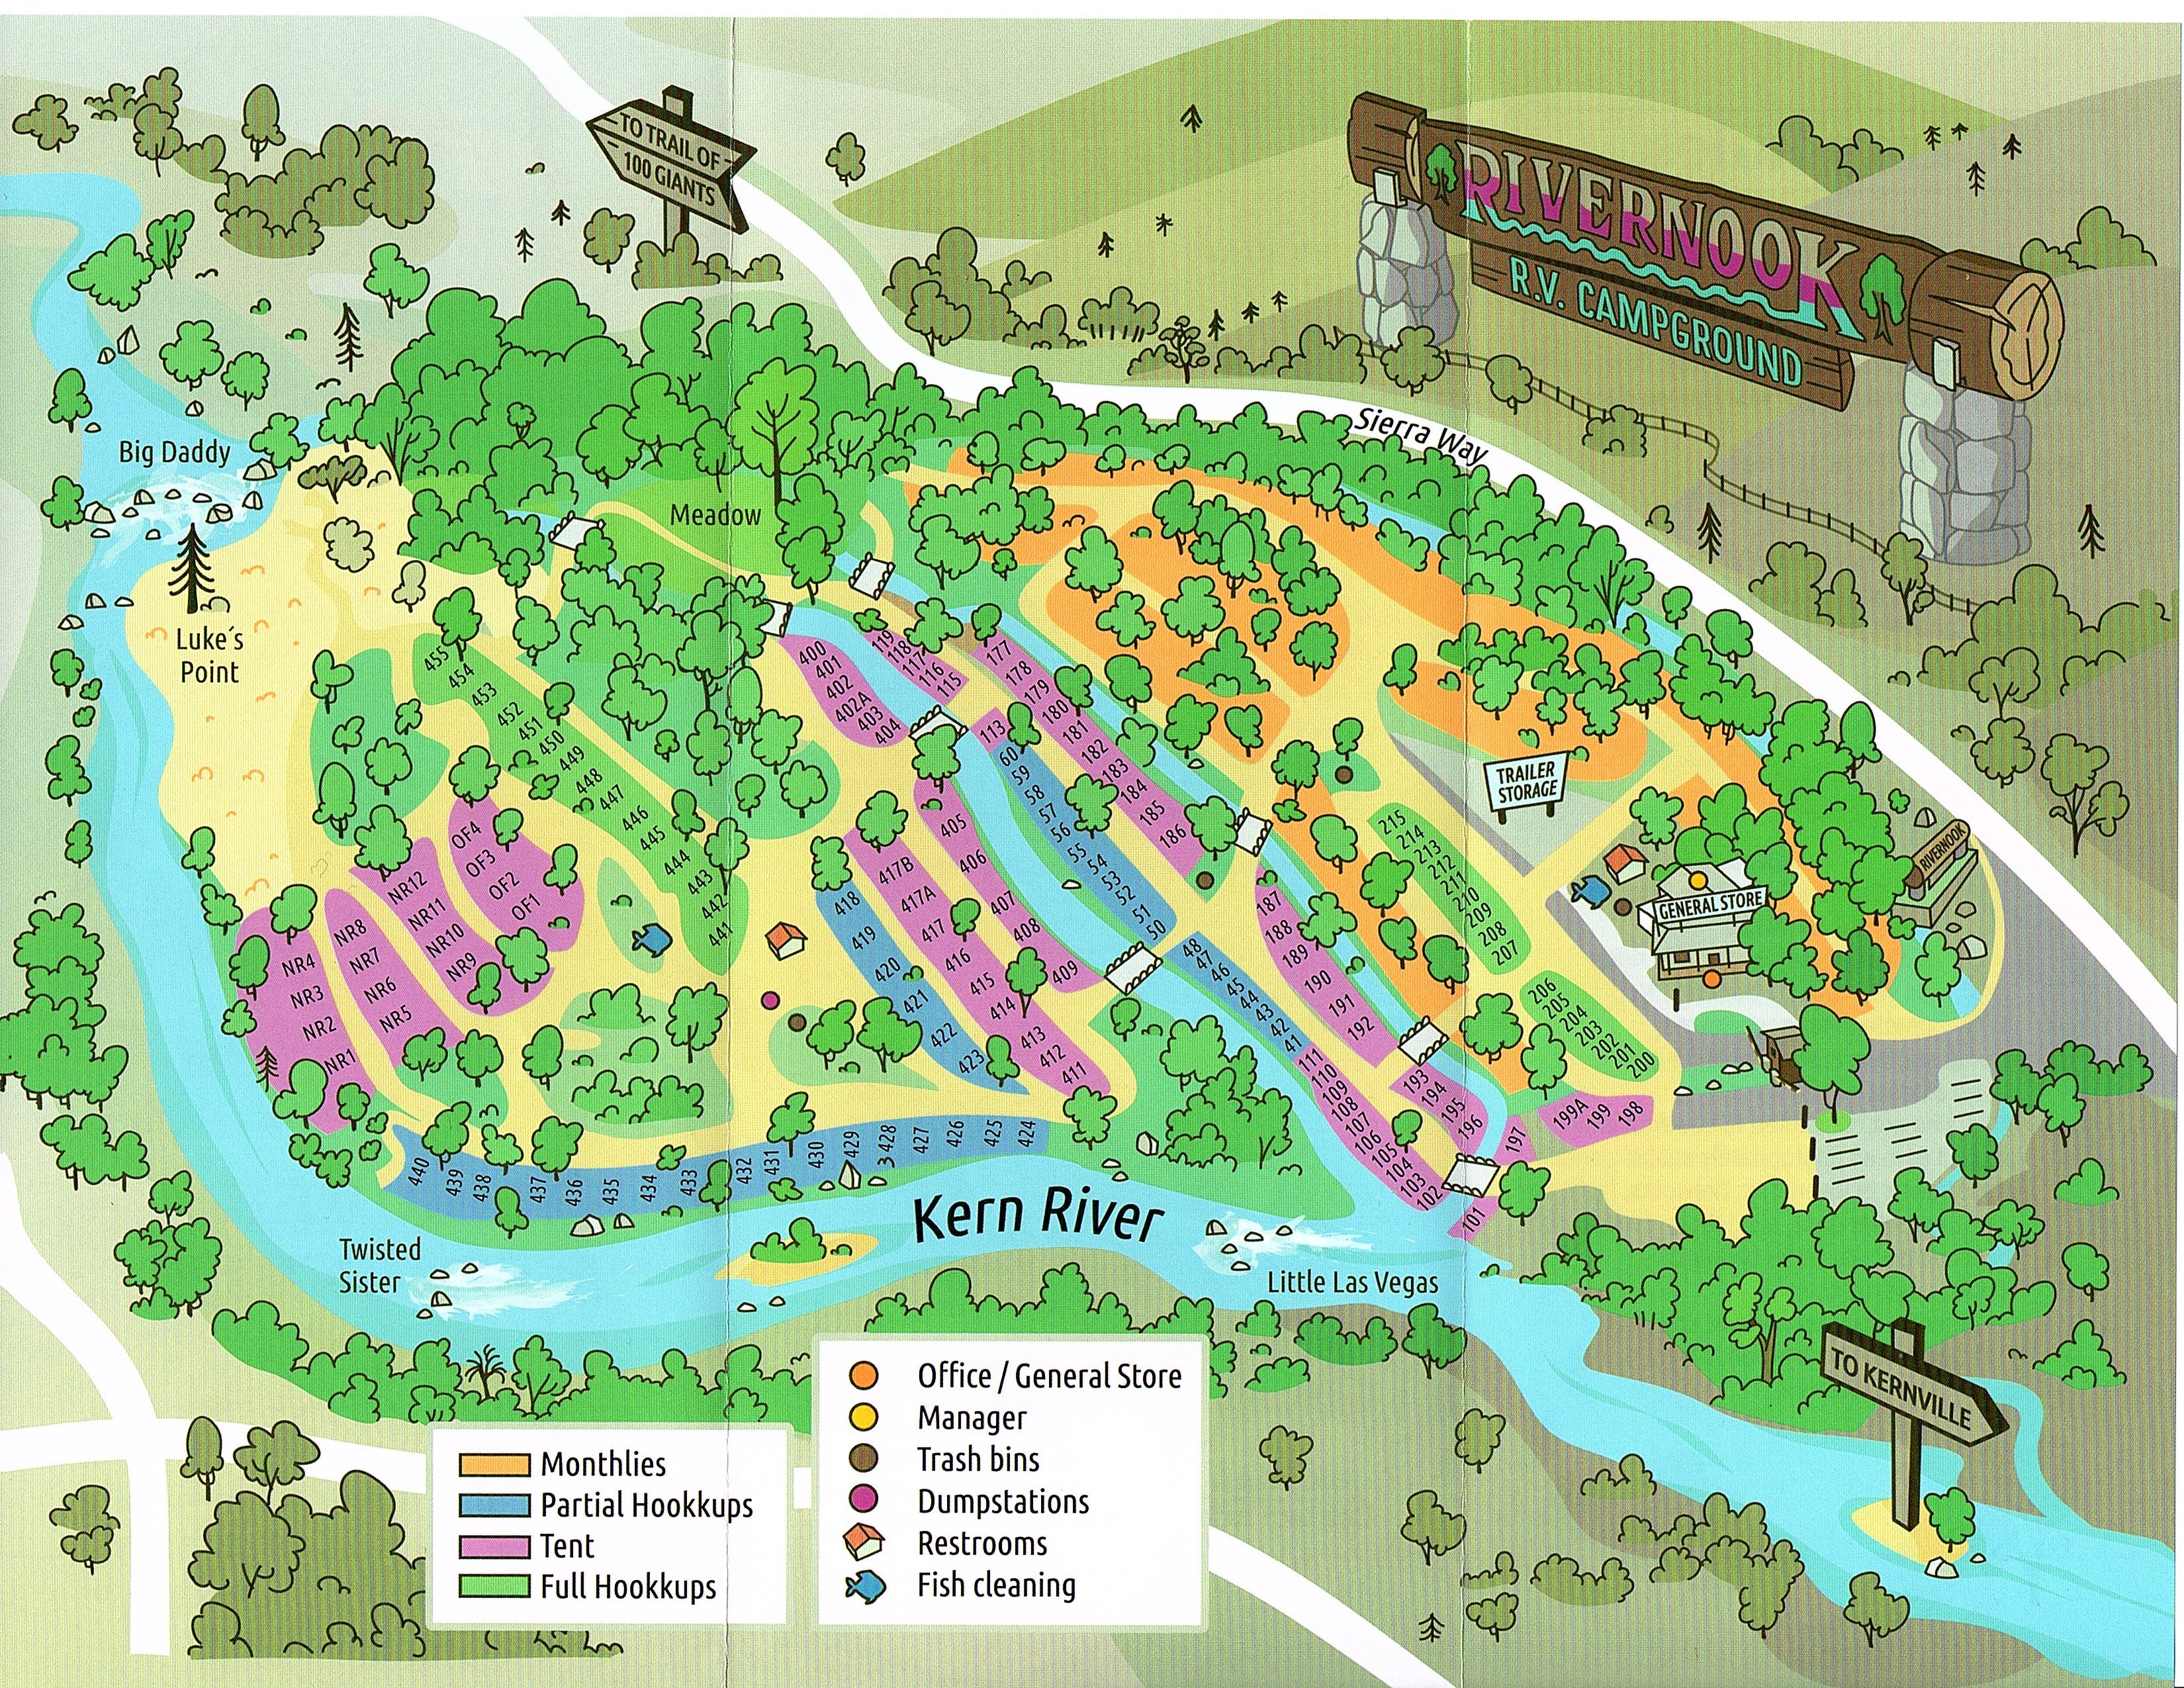 Kern River Camping Map Campground Map | Rivernook Campground Inc.